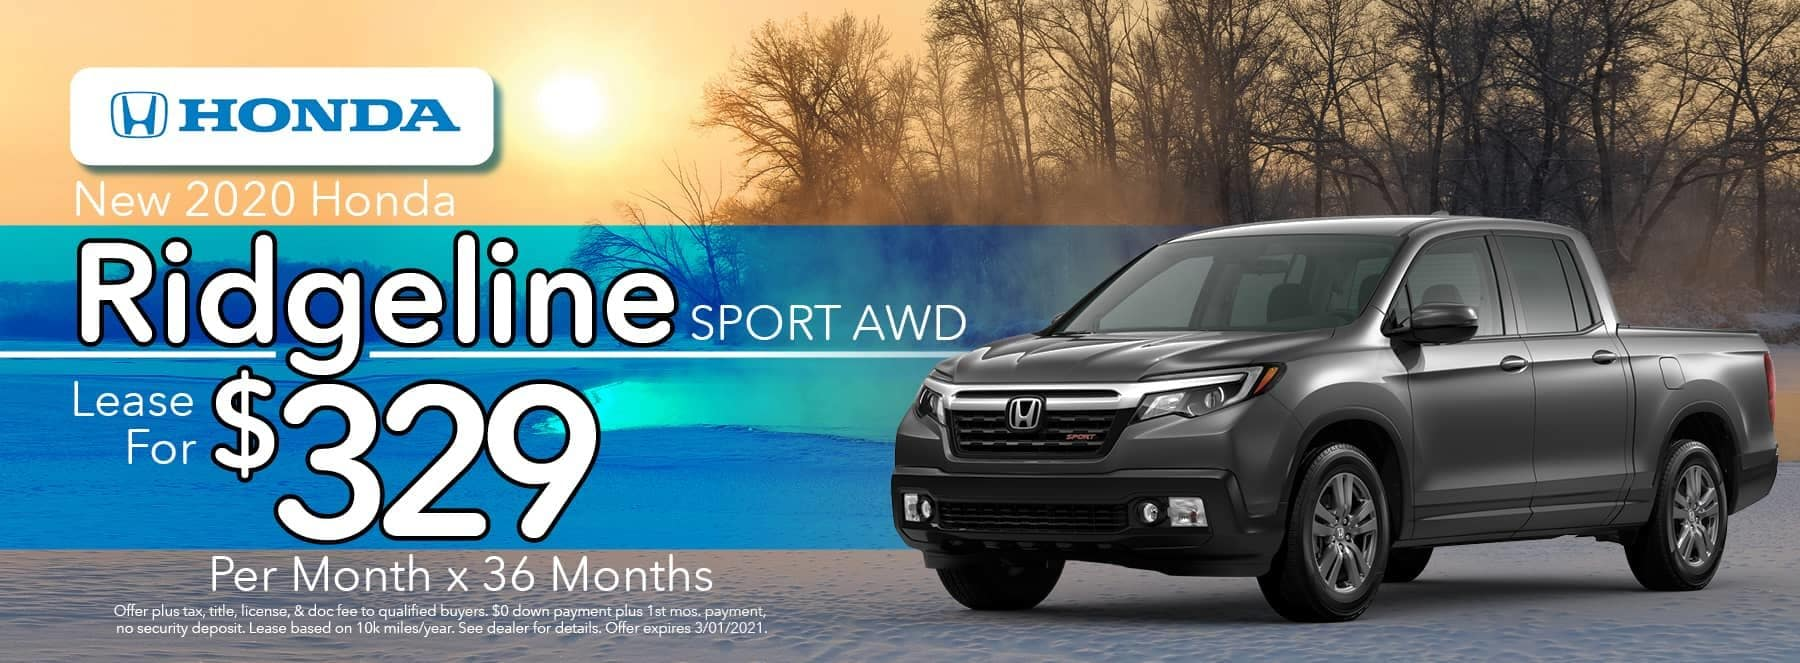 New 2020 Honda Ridgeline Sport AWD - Lease for $329 per Month for 36 Months